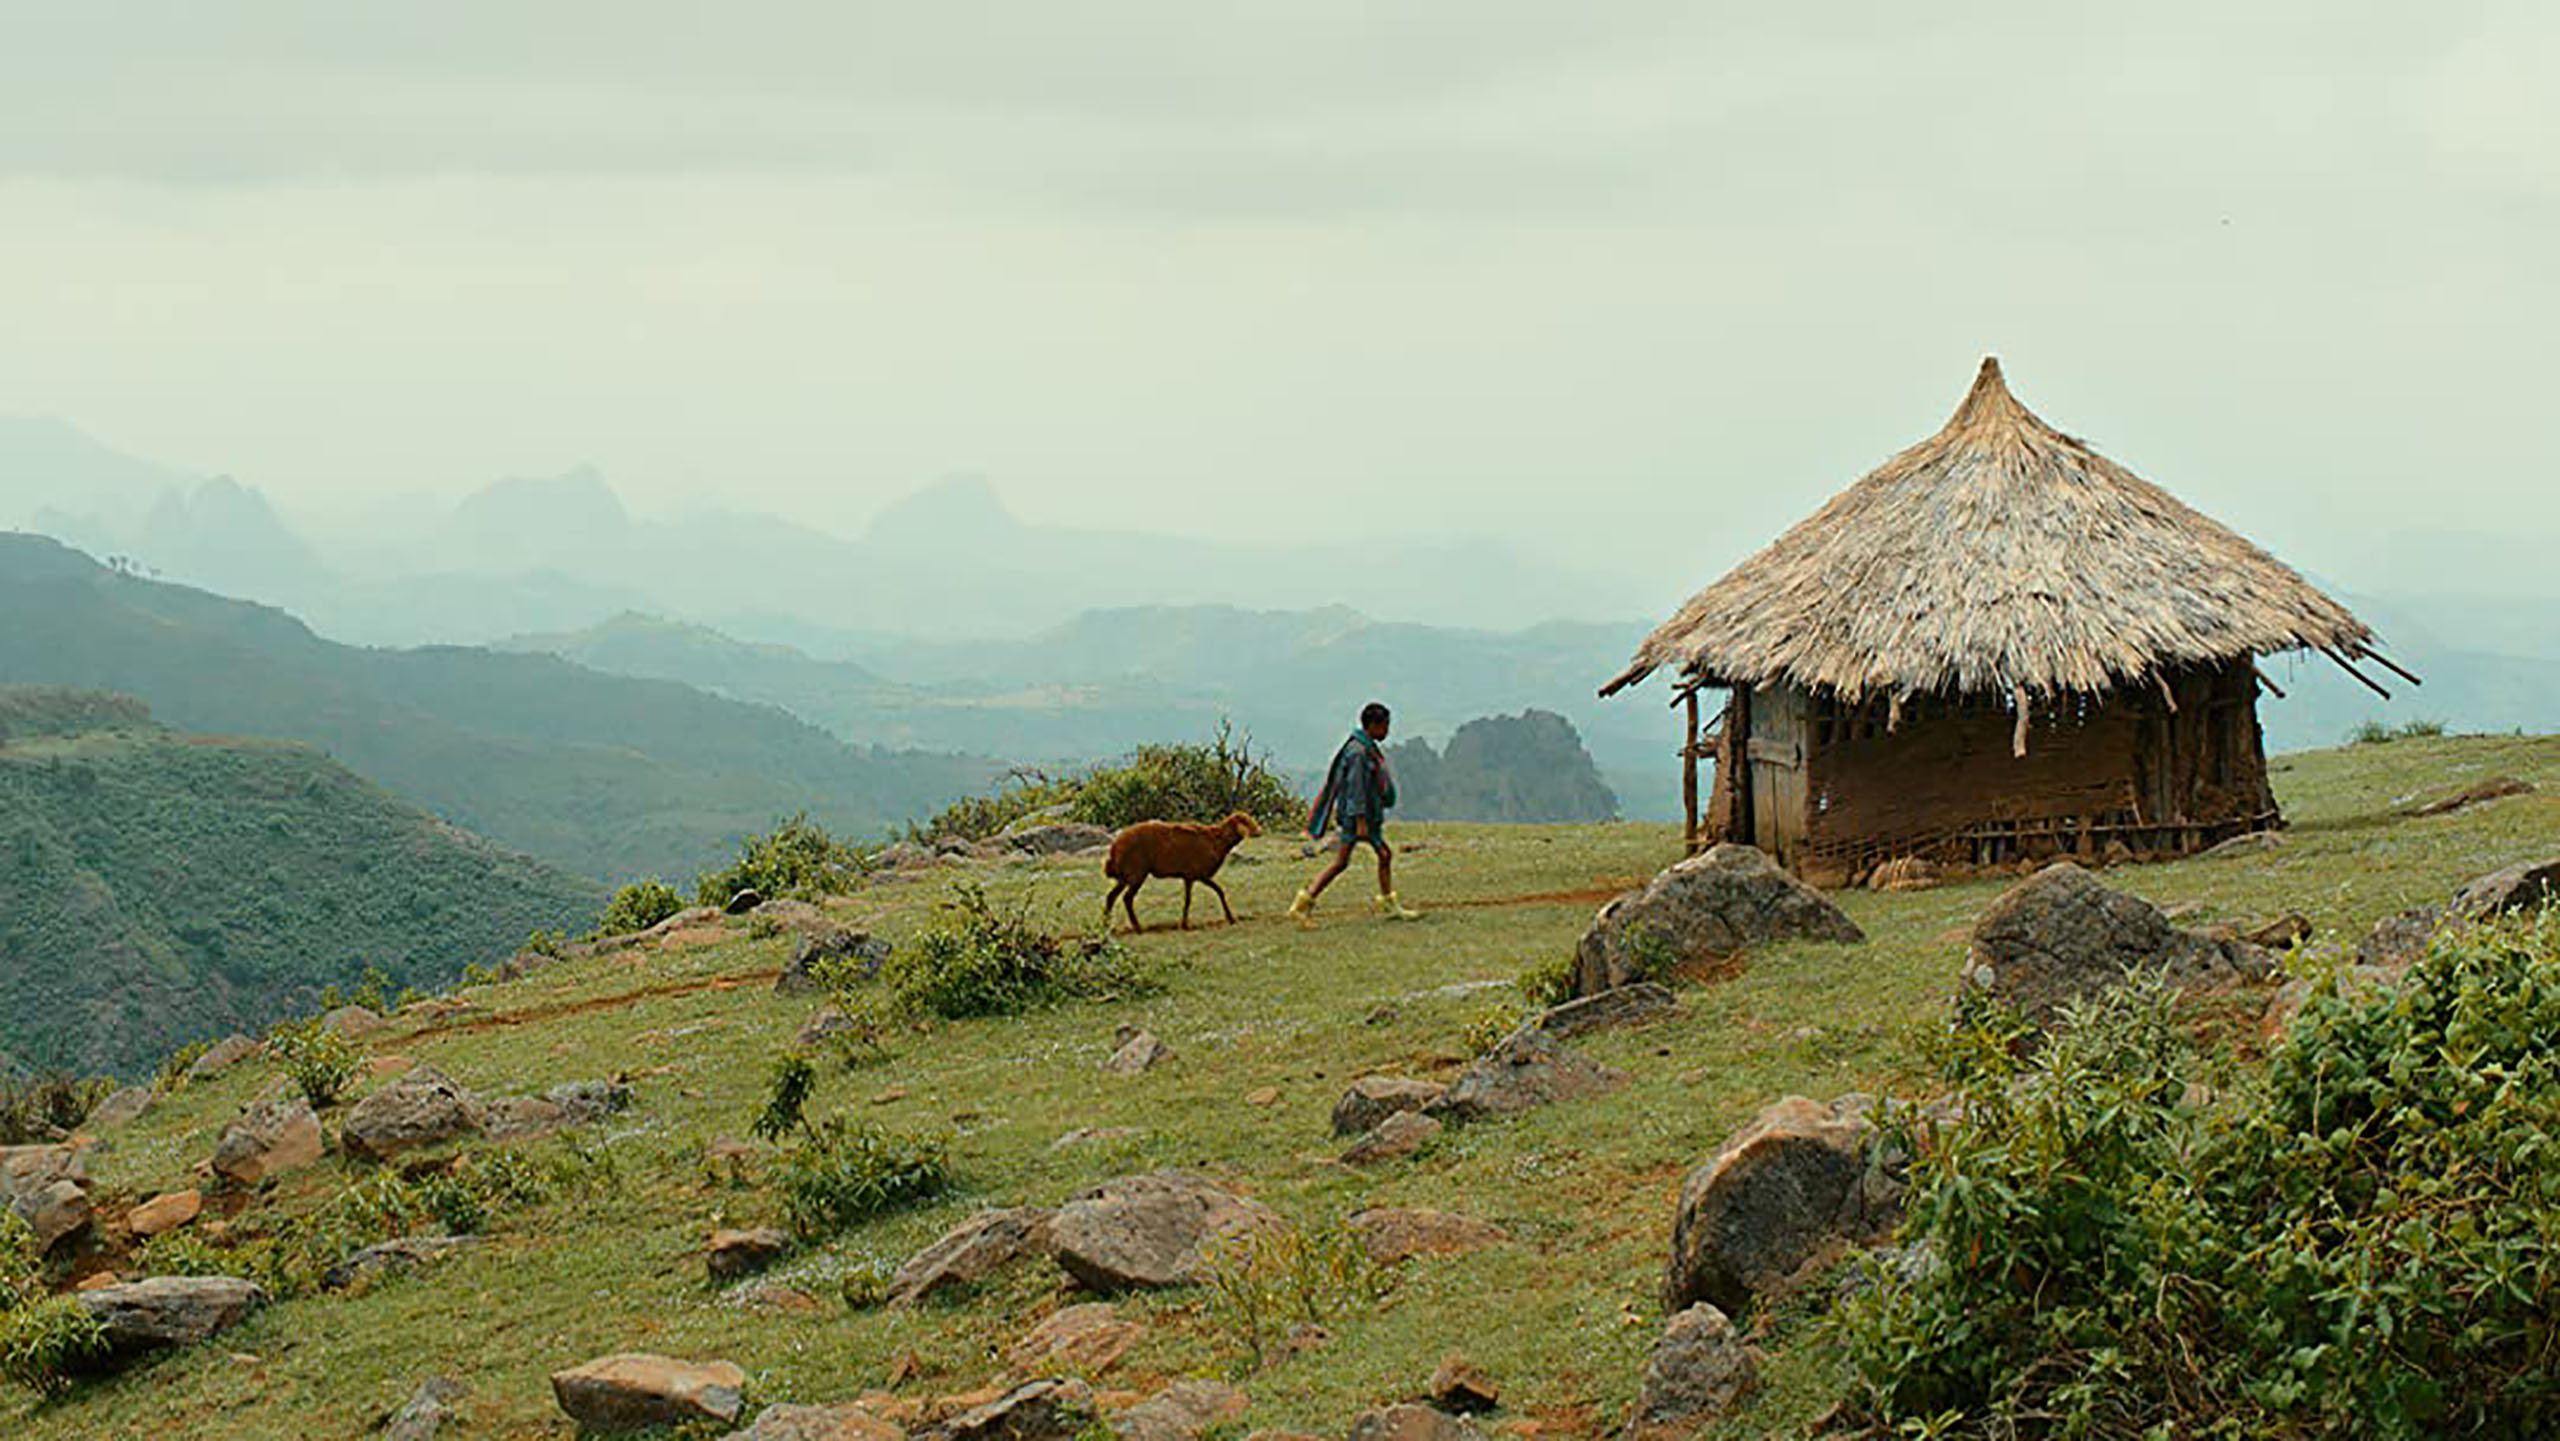 Movie Lamb Ethiopia boy walking on green grass towards hut rust colored sheep following him craggy hills in distance